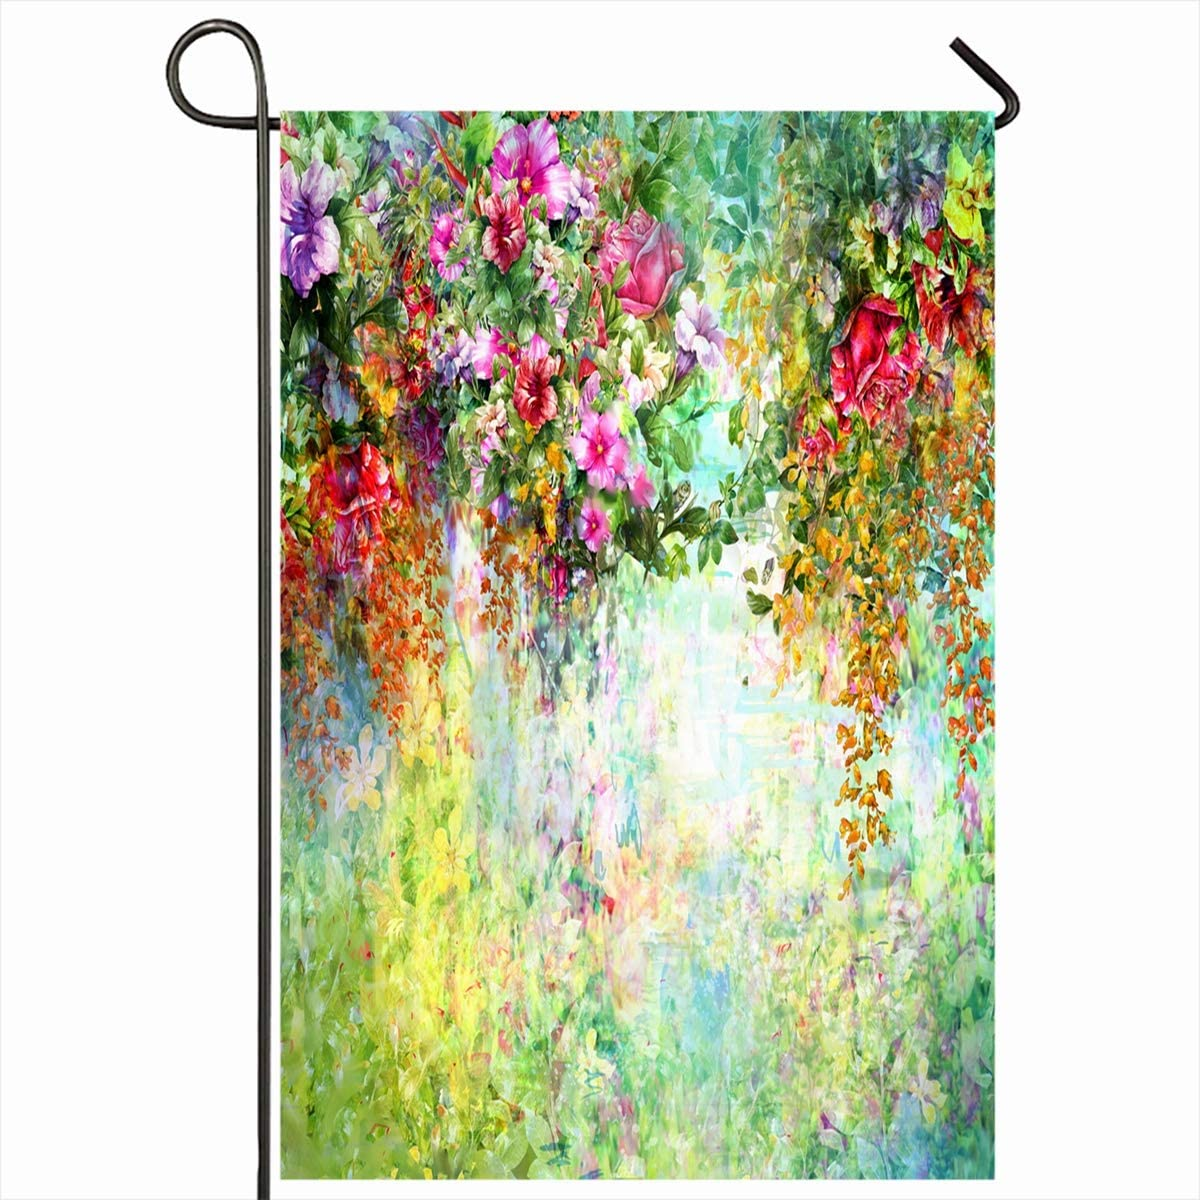 """Ahawoso Outdoor Garden Flags 12""""x18"""" Inch Multicolored Green Floral Abstract Flowers Watercolor Painting Flower Spring Nature Paint Oil Bright Vertical Double Sided Home Decorative House Yard Sign"""